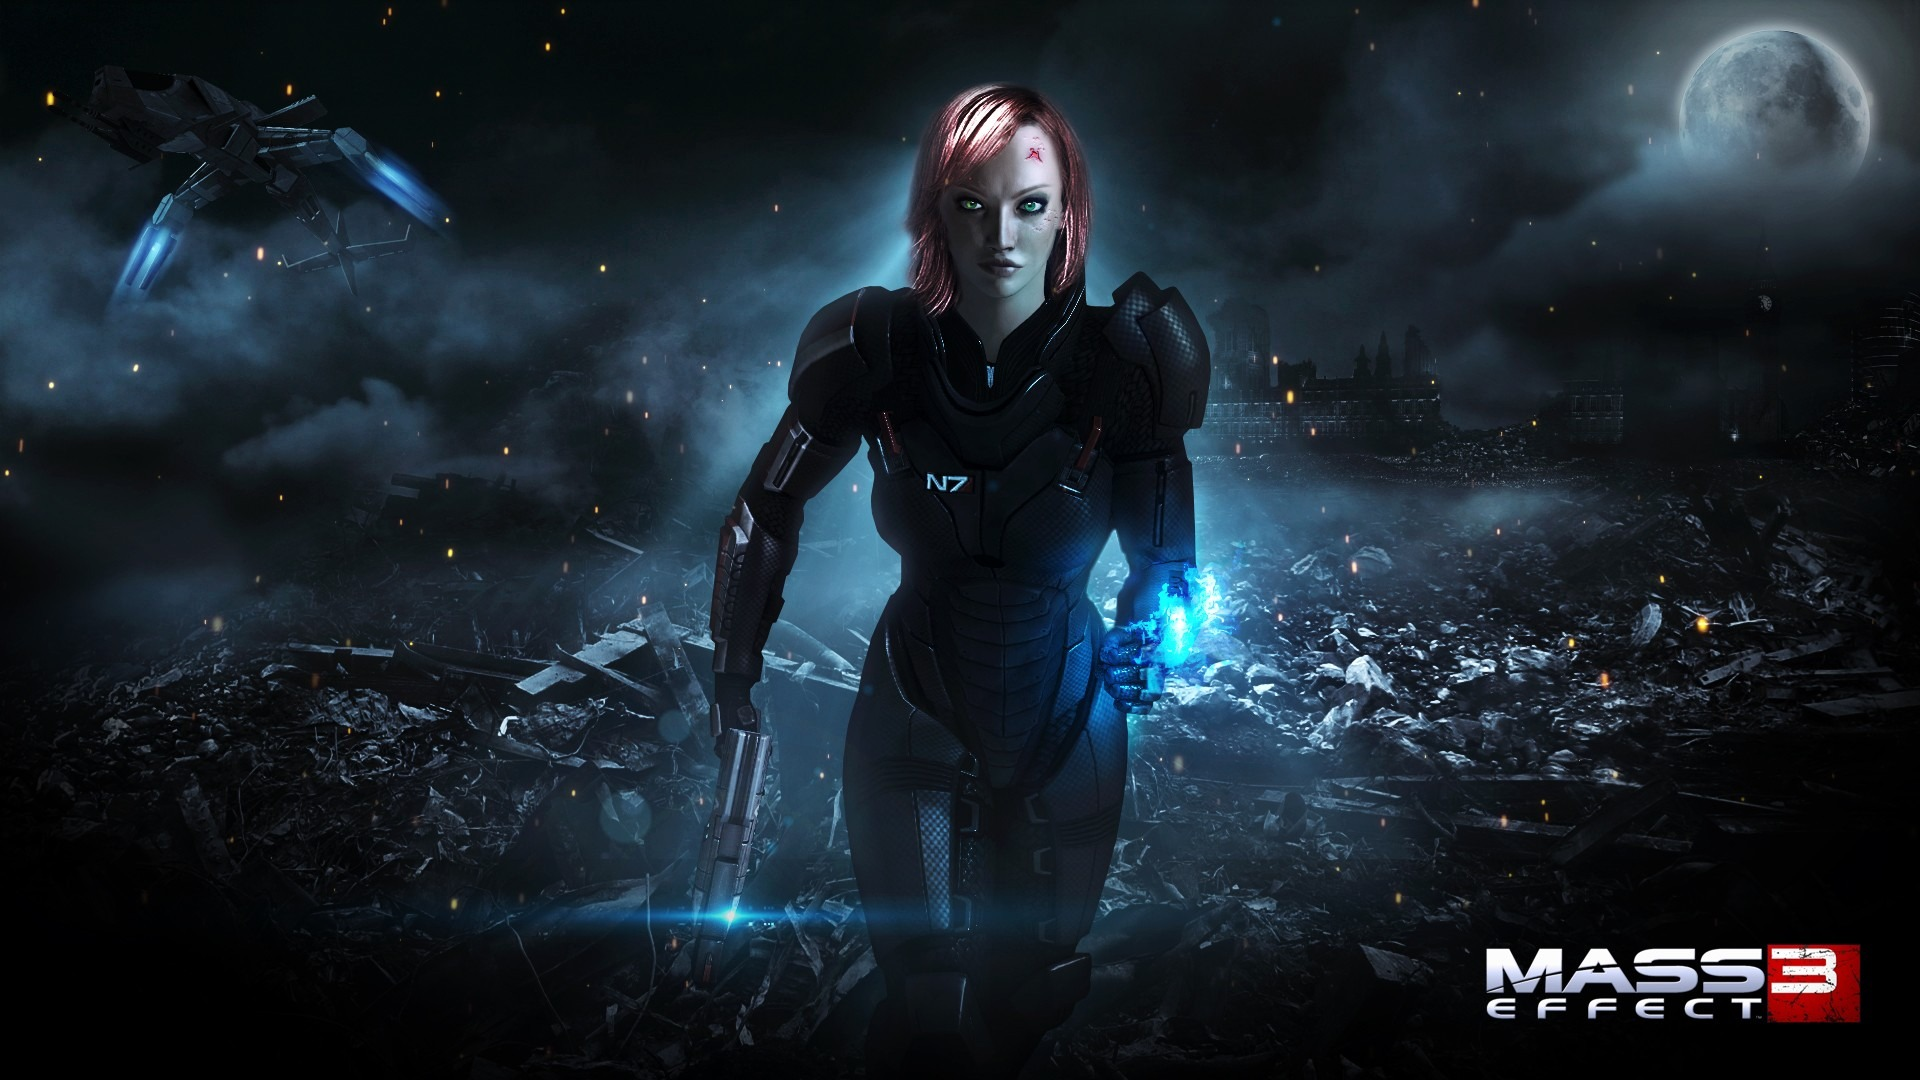 fonds d'écran mass effect : tous les wallpapers mass effect